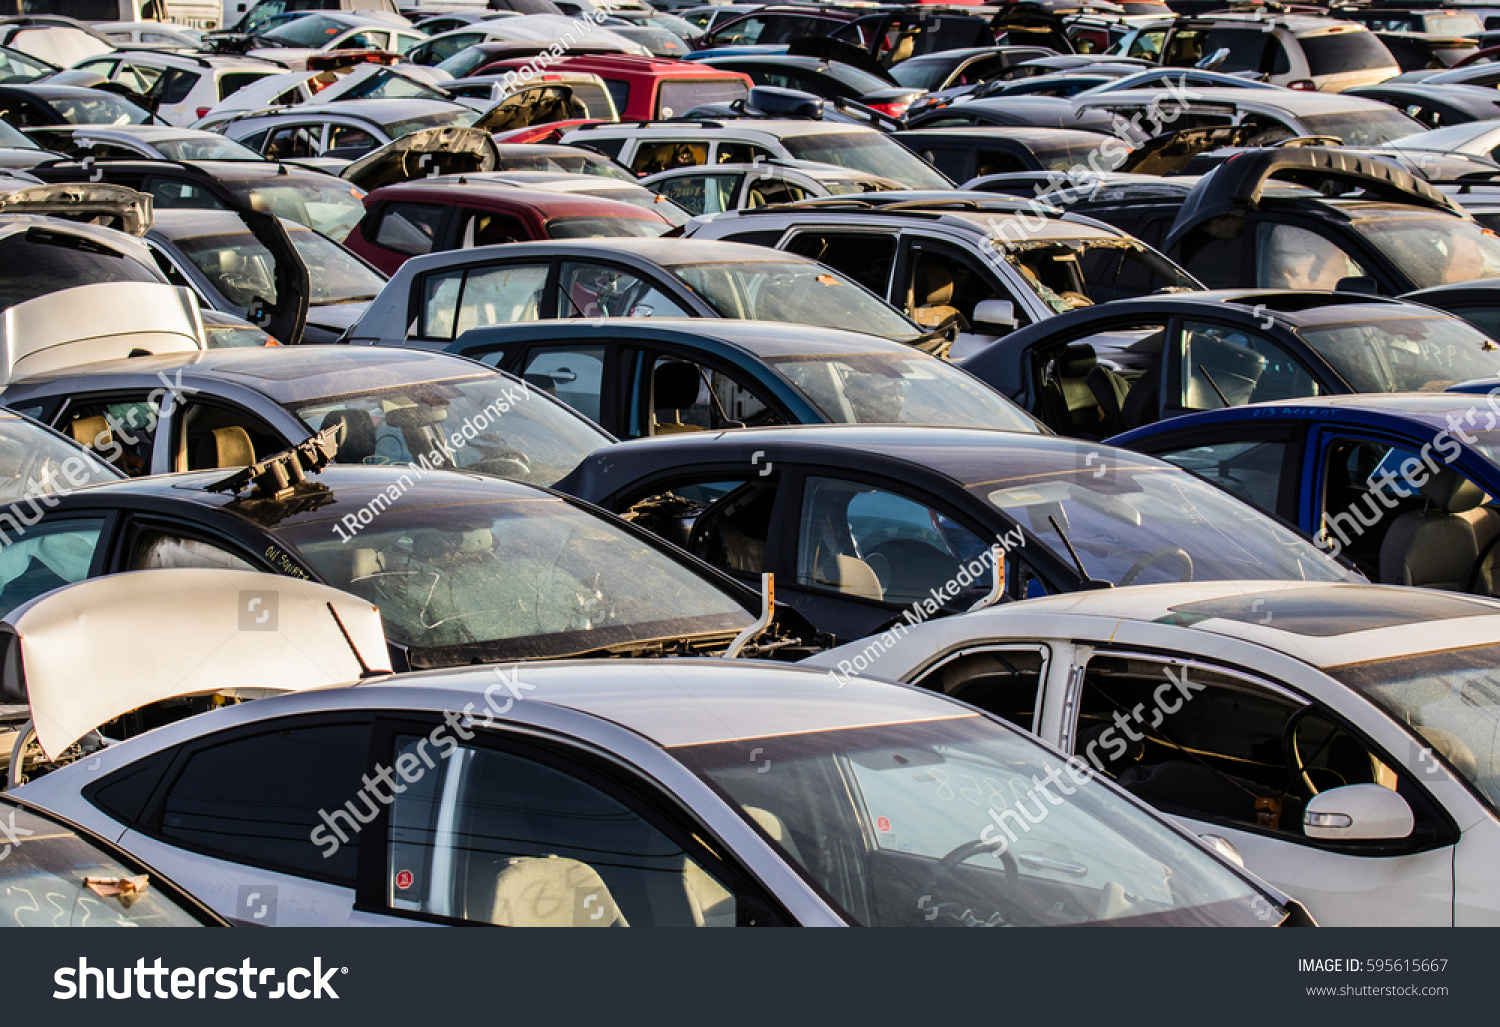 Recycling Oldused Wrecked Cars Dismantling Parts Stock Photo (100 ...